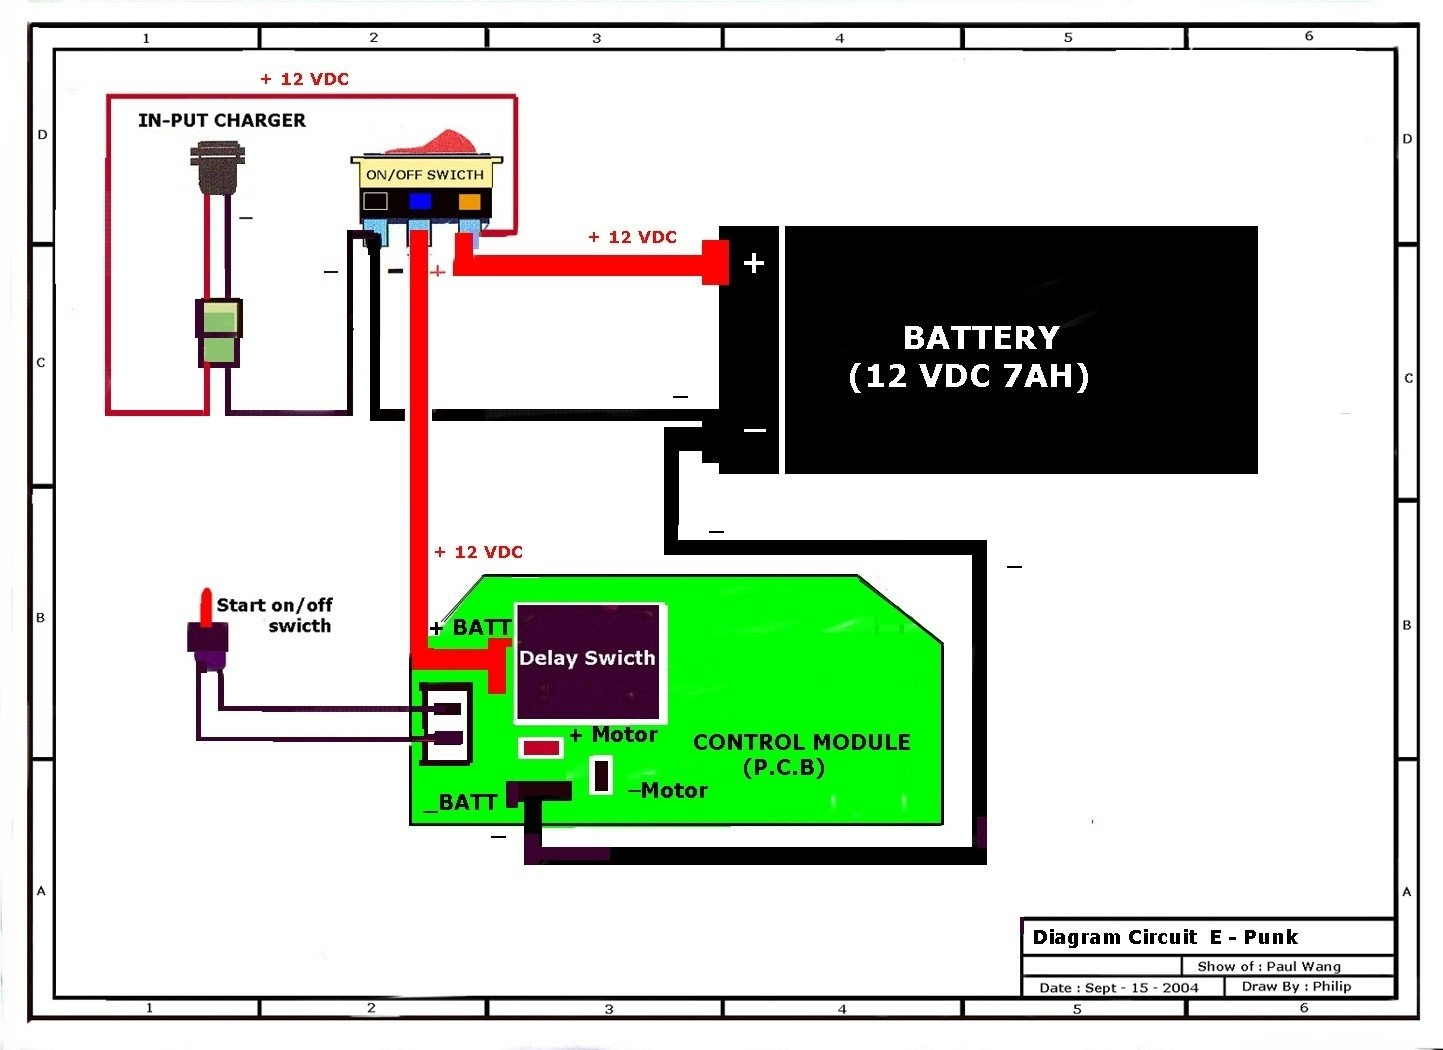 Motorized Bicycle Wiring Diagram | Autowiringdiagram - Motorized Bicycle Wiring Diagram